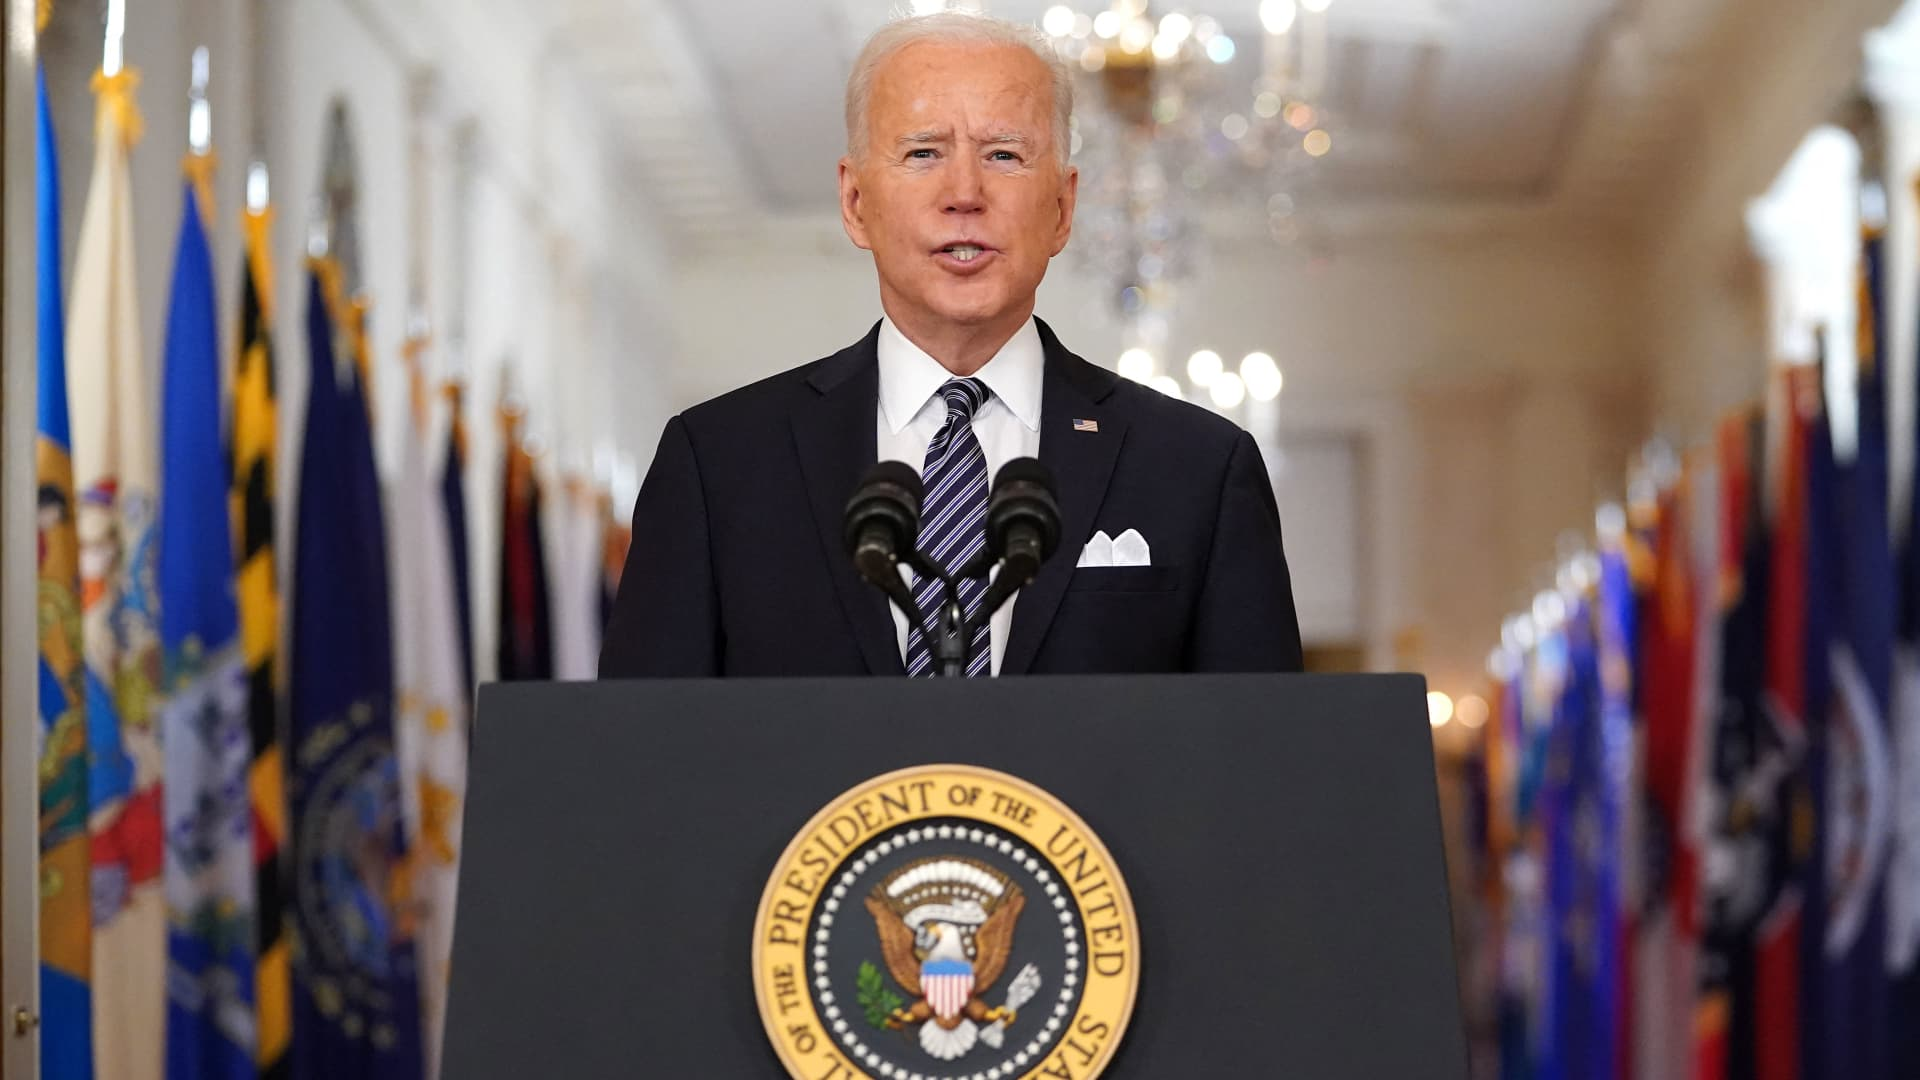 US President Joe Biden speaks on the anniversary of the start of the Covid-19 pandemic, in the East Room of the White House in Washington, DC on March 11, 2021.